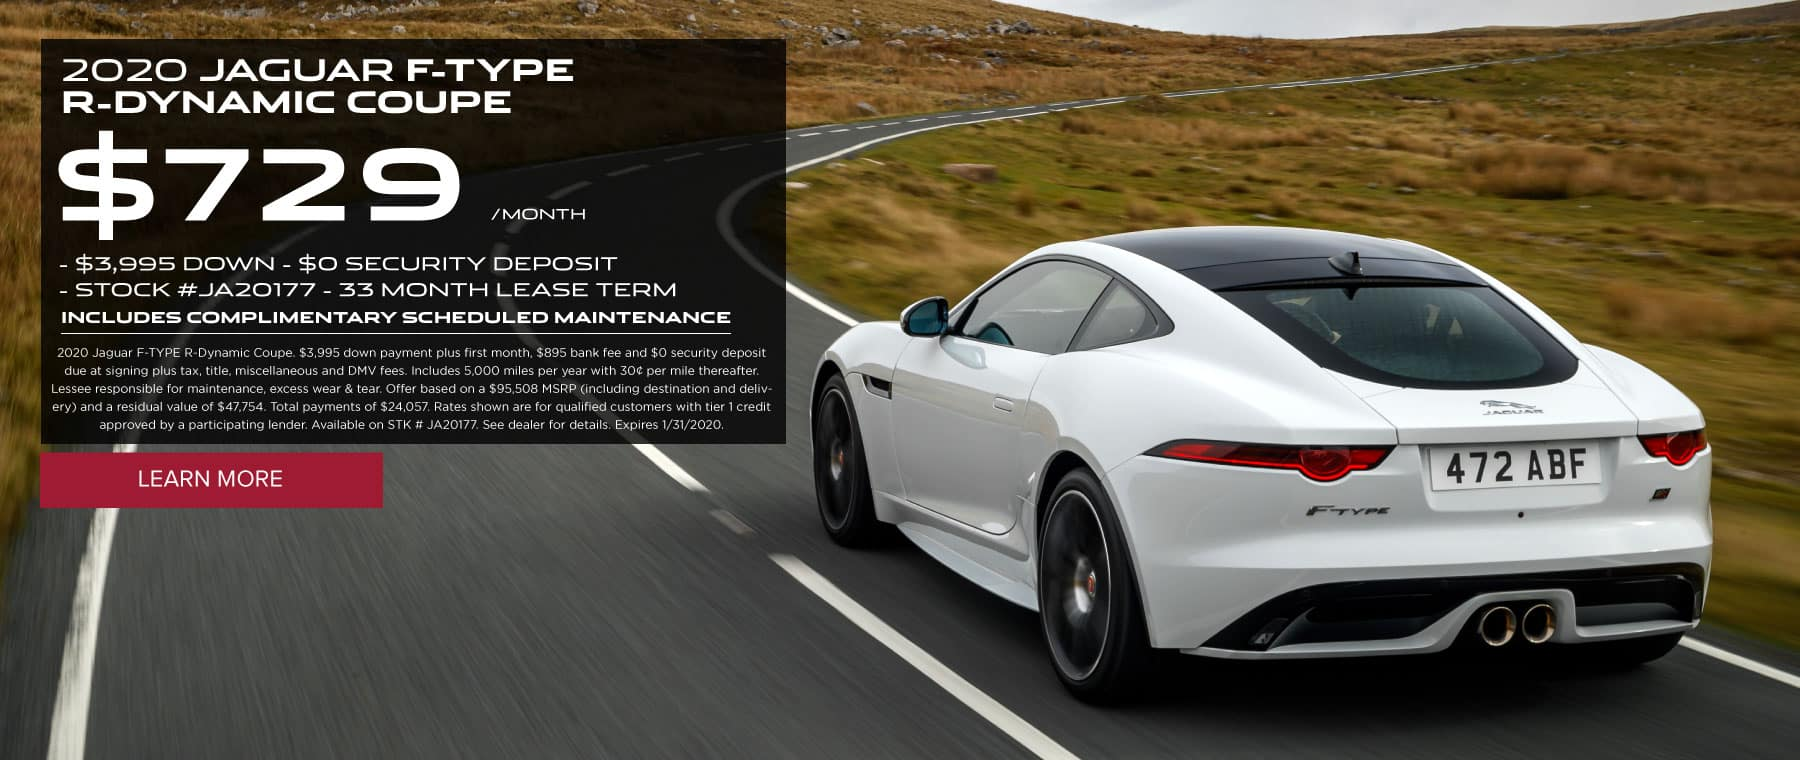 2020 JAGUAR F-TYPE R-DYNAMIC COUPE $729/MONTH $3,995 DOWN $0 SECURITY DEPOSIT STOCK #JA20177 33 MONTH LEASE TERM INCLUDES COMPLIMENTARY SCHEDULED MAINTENANCE 2020 Jaguar F-TYPE R-Dynamic Coupe. $3,995 down payment plus first month, $895 bank fee and $0 security deposit due at signing plus tax, title, miscellaneous and DMV fees. Includes 5,000 miles per year with 30¢ per mile thereafter. Lessee responsible for maintenance, excess wear & tear. Offer based on a $95,508 MSRP (including destination and delivery) and a residual value of $47,754. Total payments of $24,057. Rates shown are for qualified customers with tier 1 credit approved by a participating lender. Available on STK # JA20177. See dealer for details. Expires 1/31/2020. Click to learn more. Rear of white F-TYPE Coup on a long highway with grass surrounding the road.